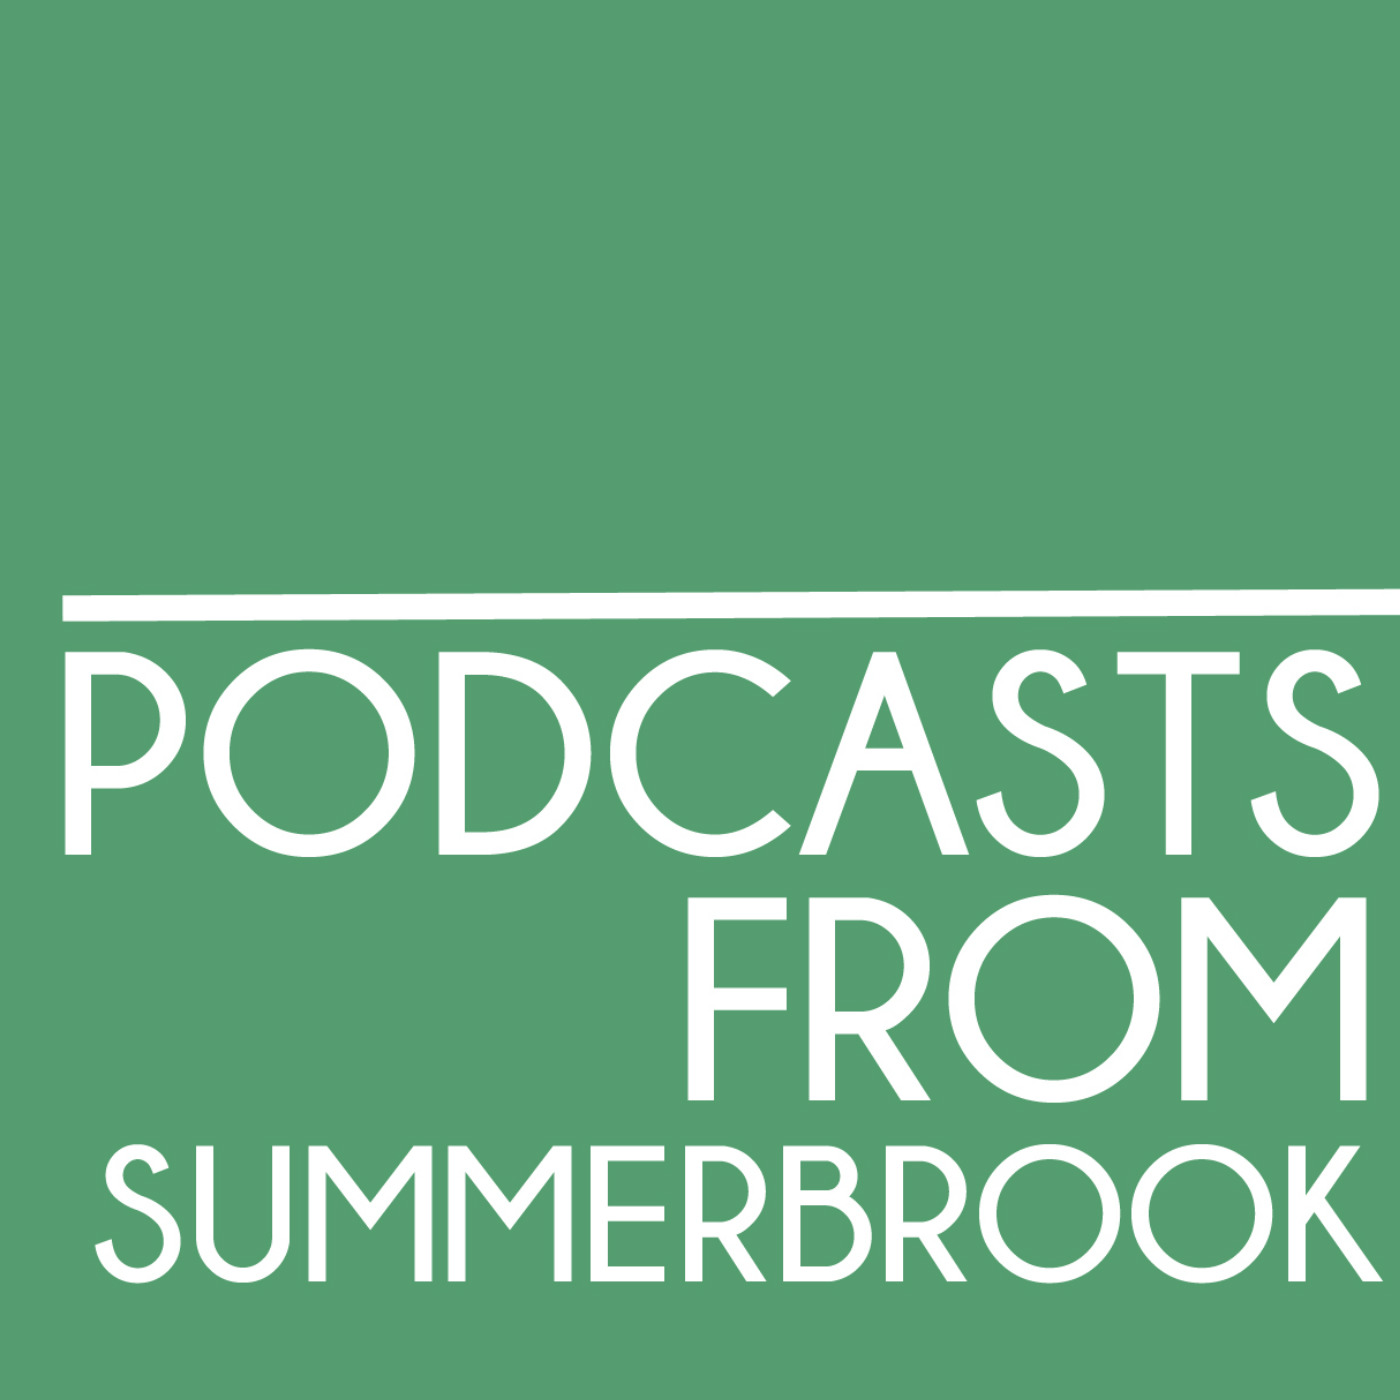 Podcasts from Summerbrook